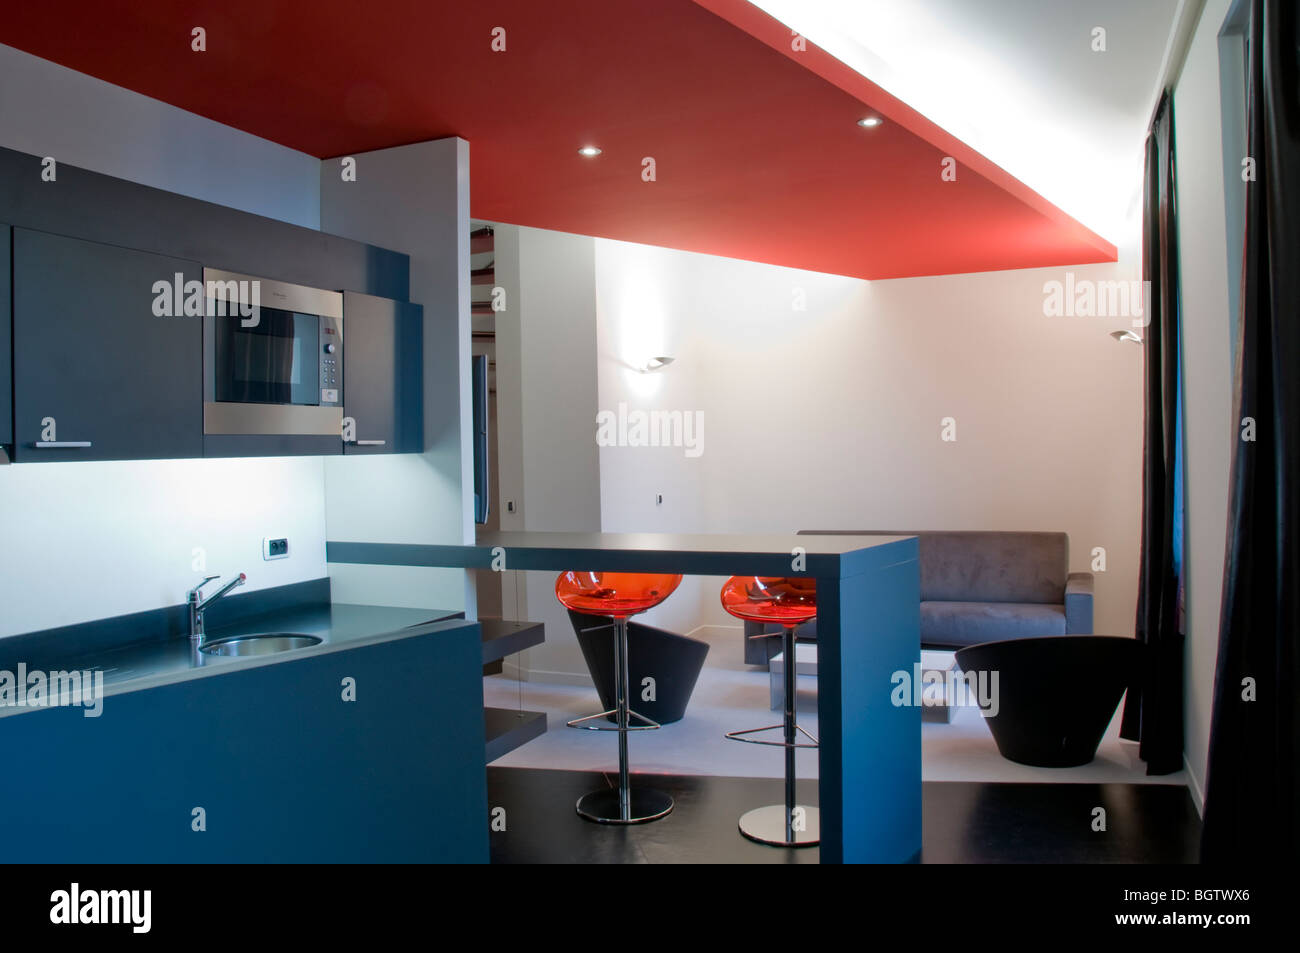 Kitchen Studio Modern Luxury Hotel Room Stock Photos